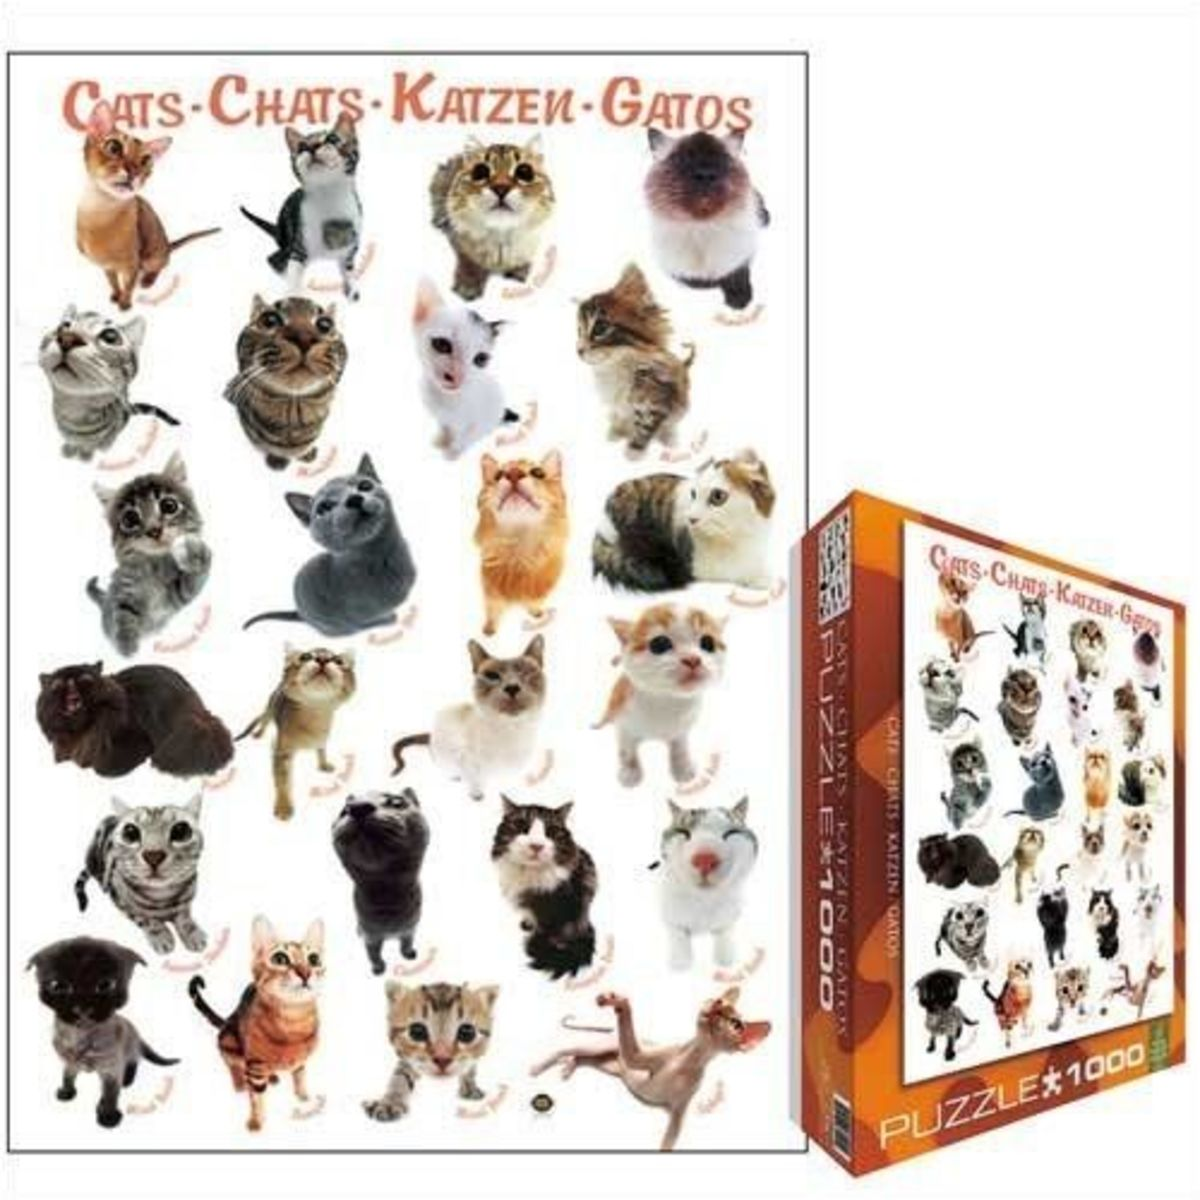 Jigsaw Puzzle by Yoneo Morita, Classic Cat Breeds, 1000 pieces